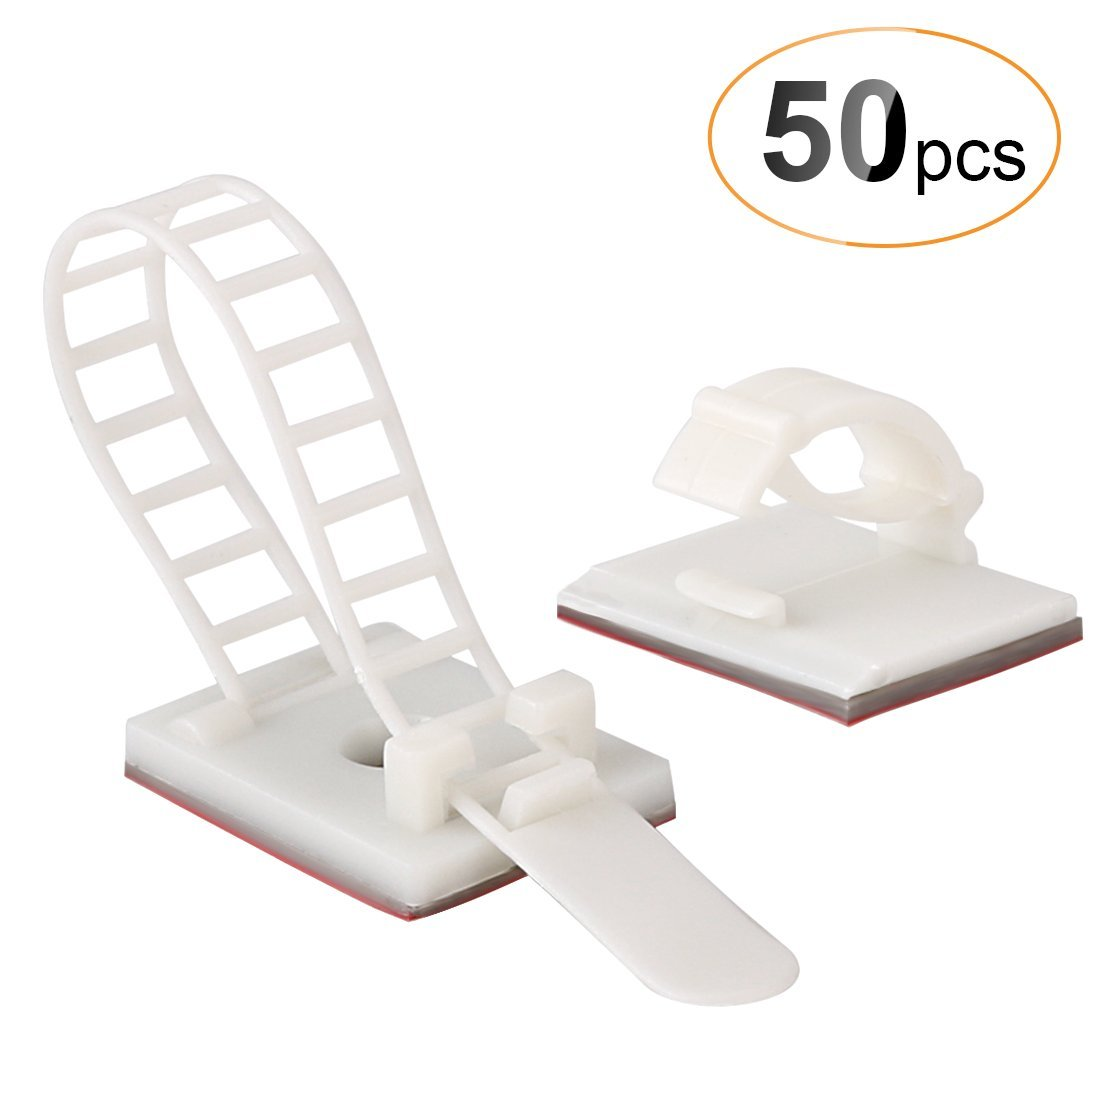 AGPTEK 50 Pieces Adhesive Cable Management Set, (Includes 25 Pieces Cable Clips & 25 Pieces Adjustable Cable Ties), White C2W-EU